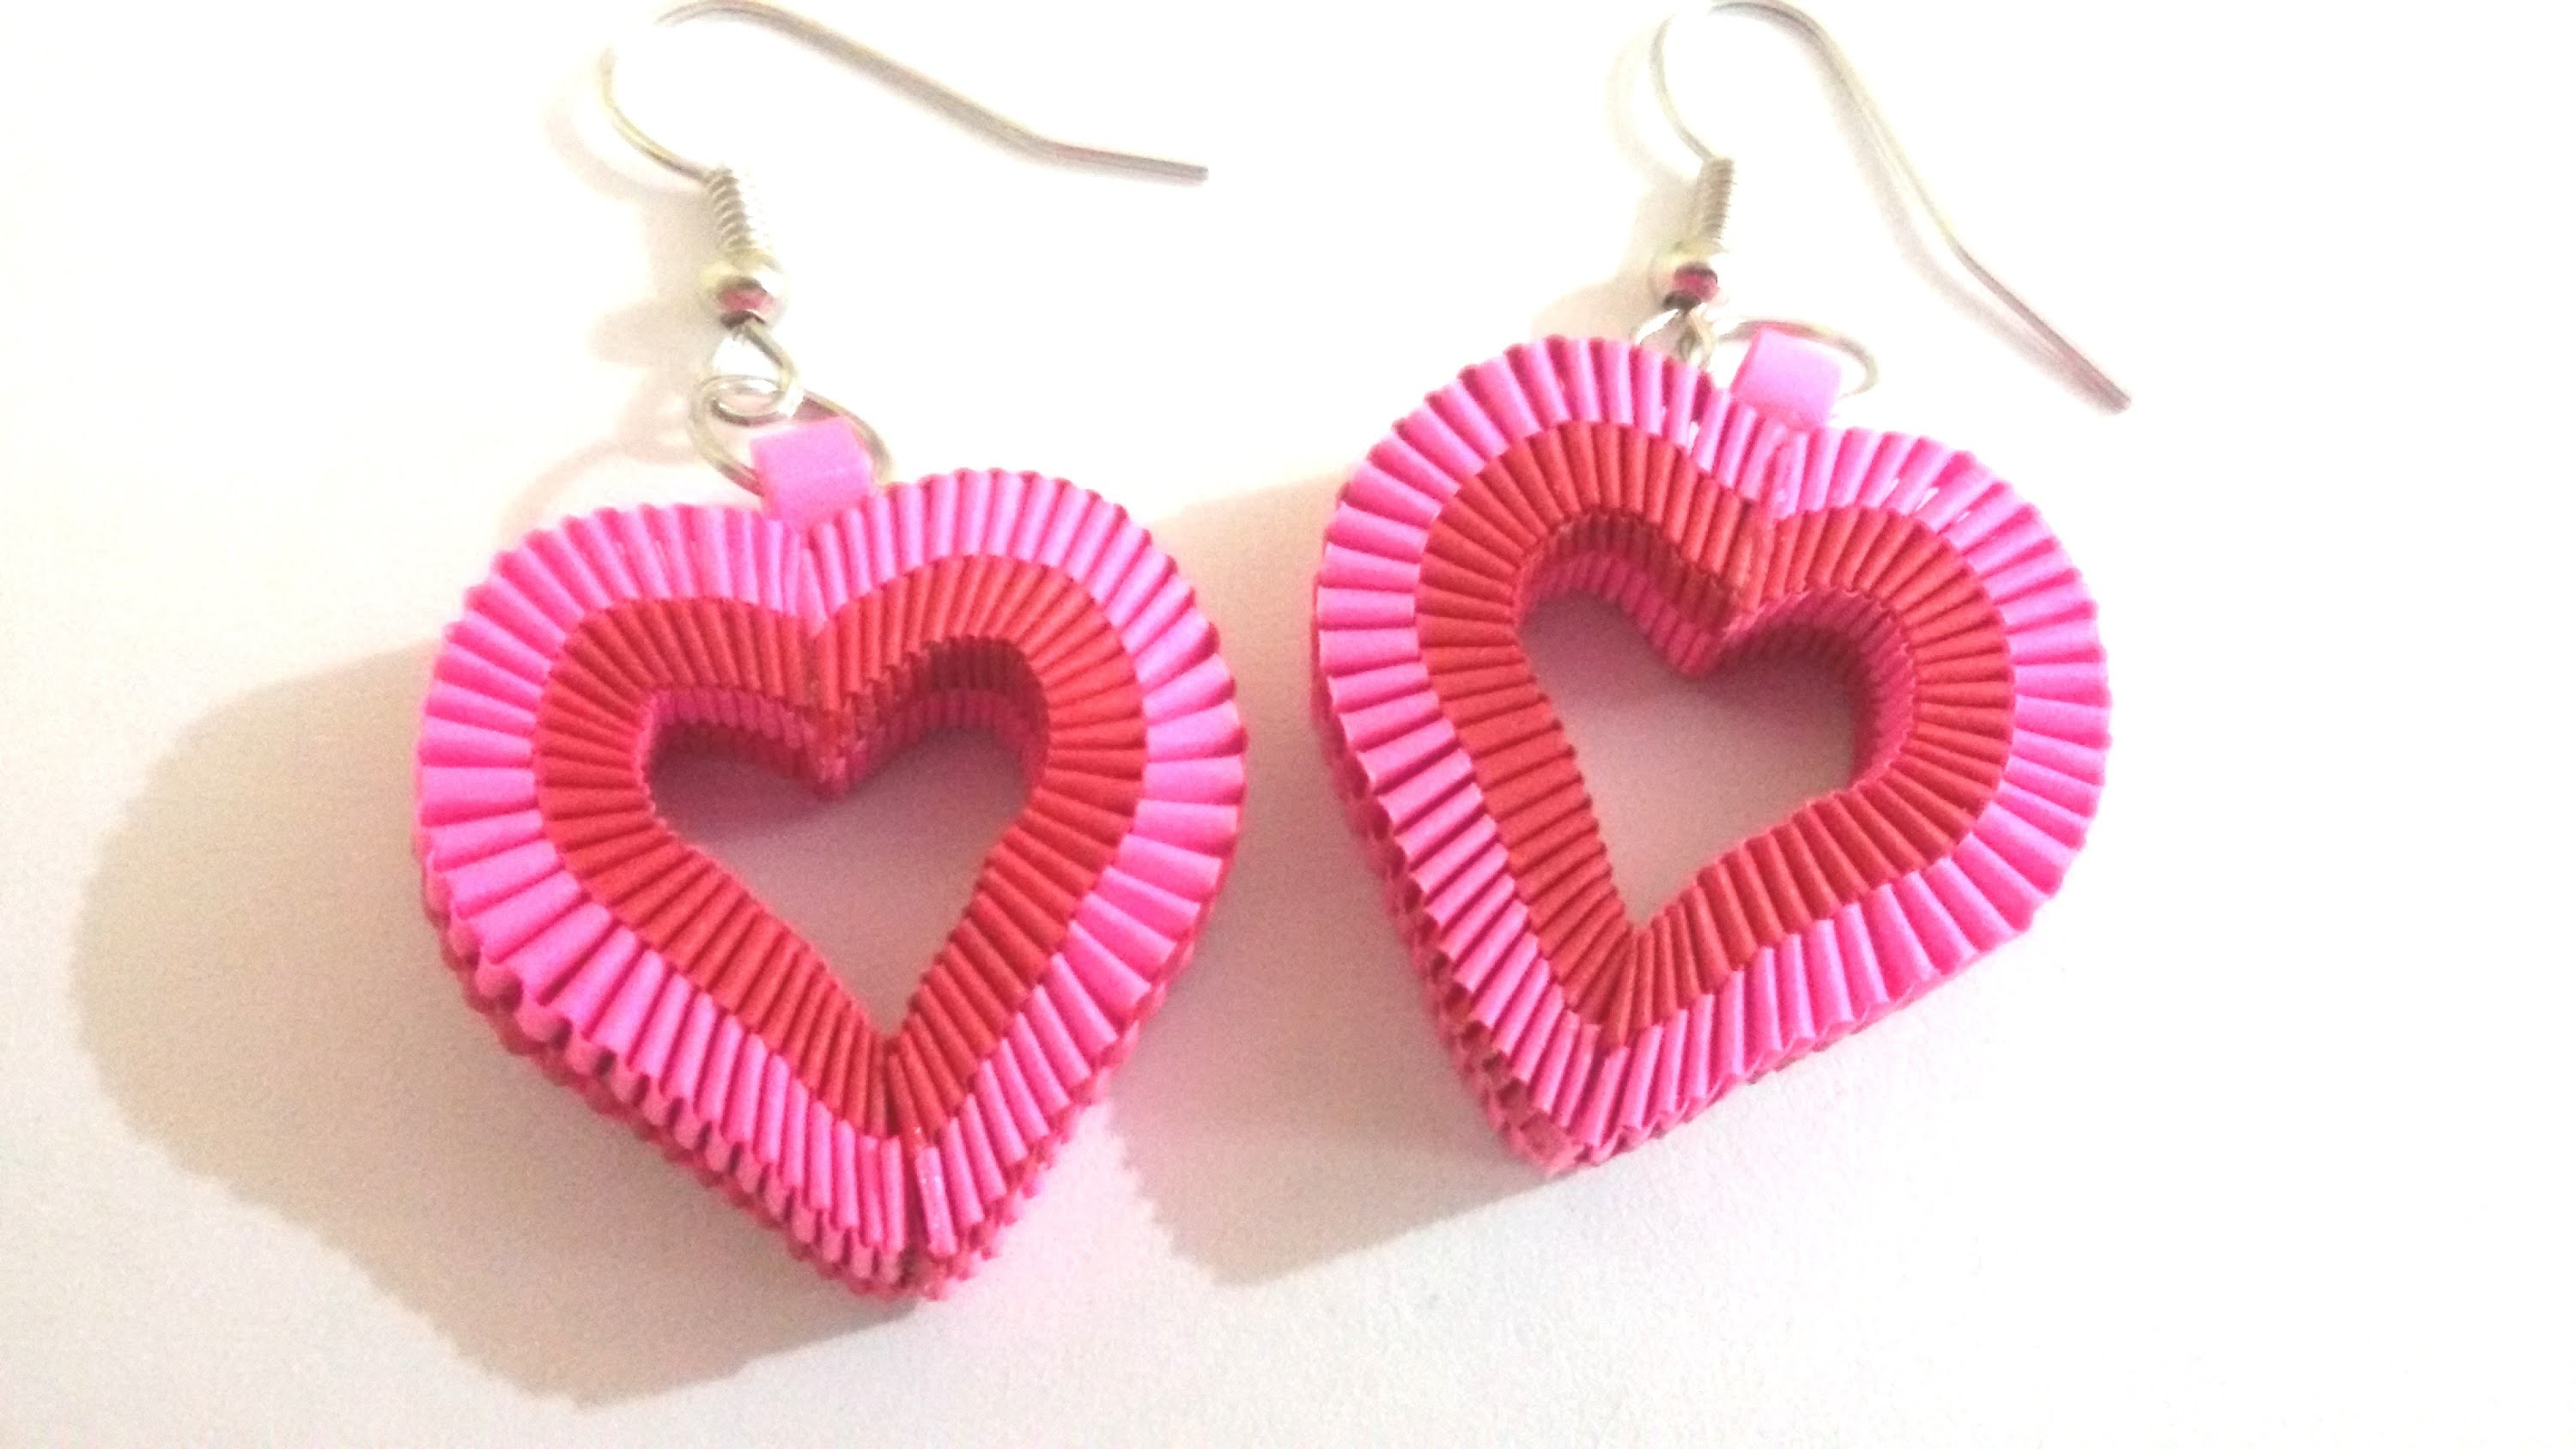 6. How to make Paper Weaving Heart Shape Earrings